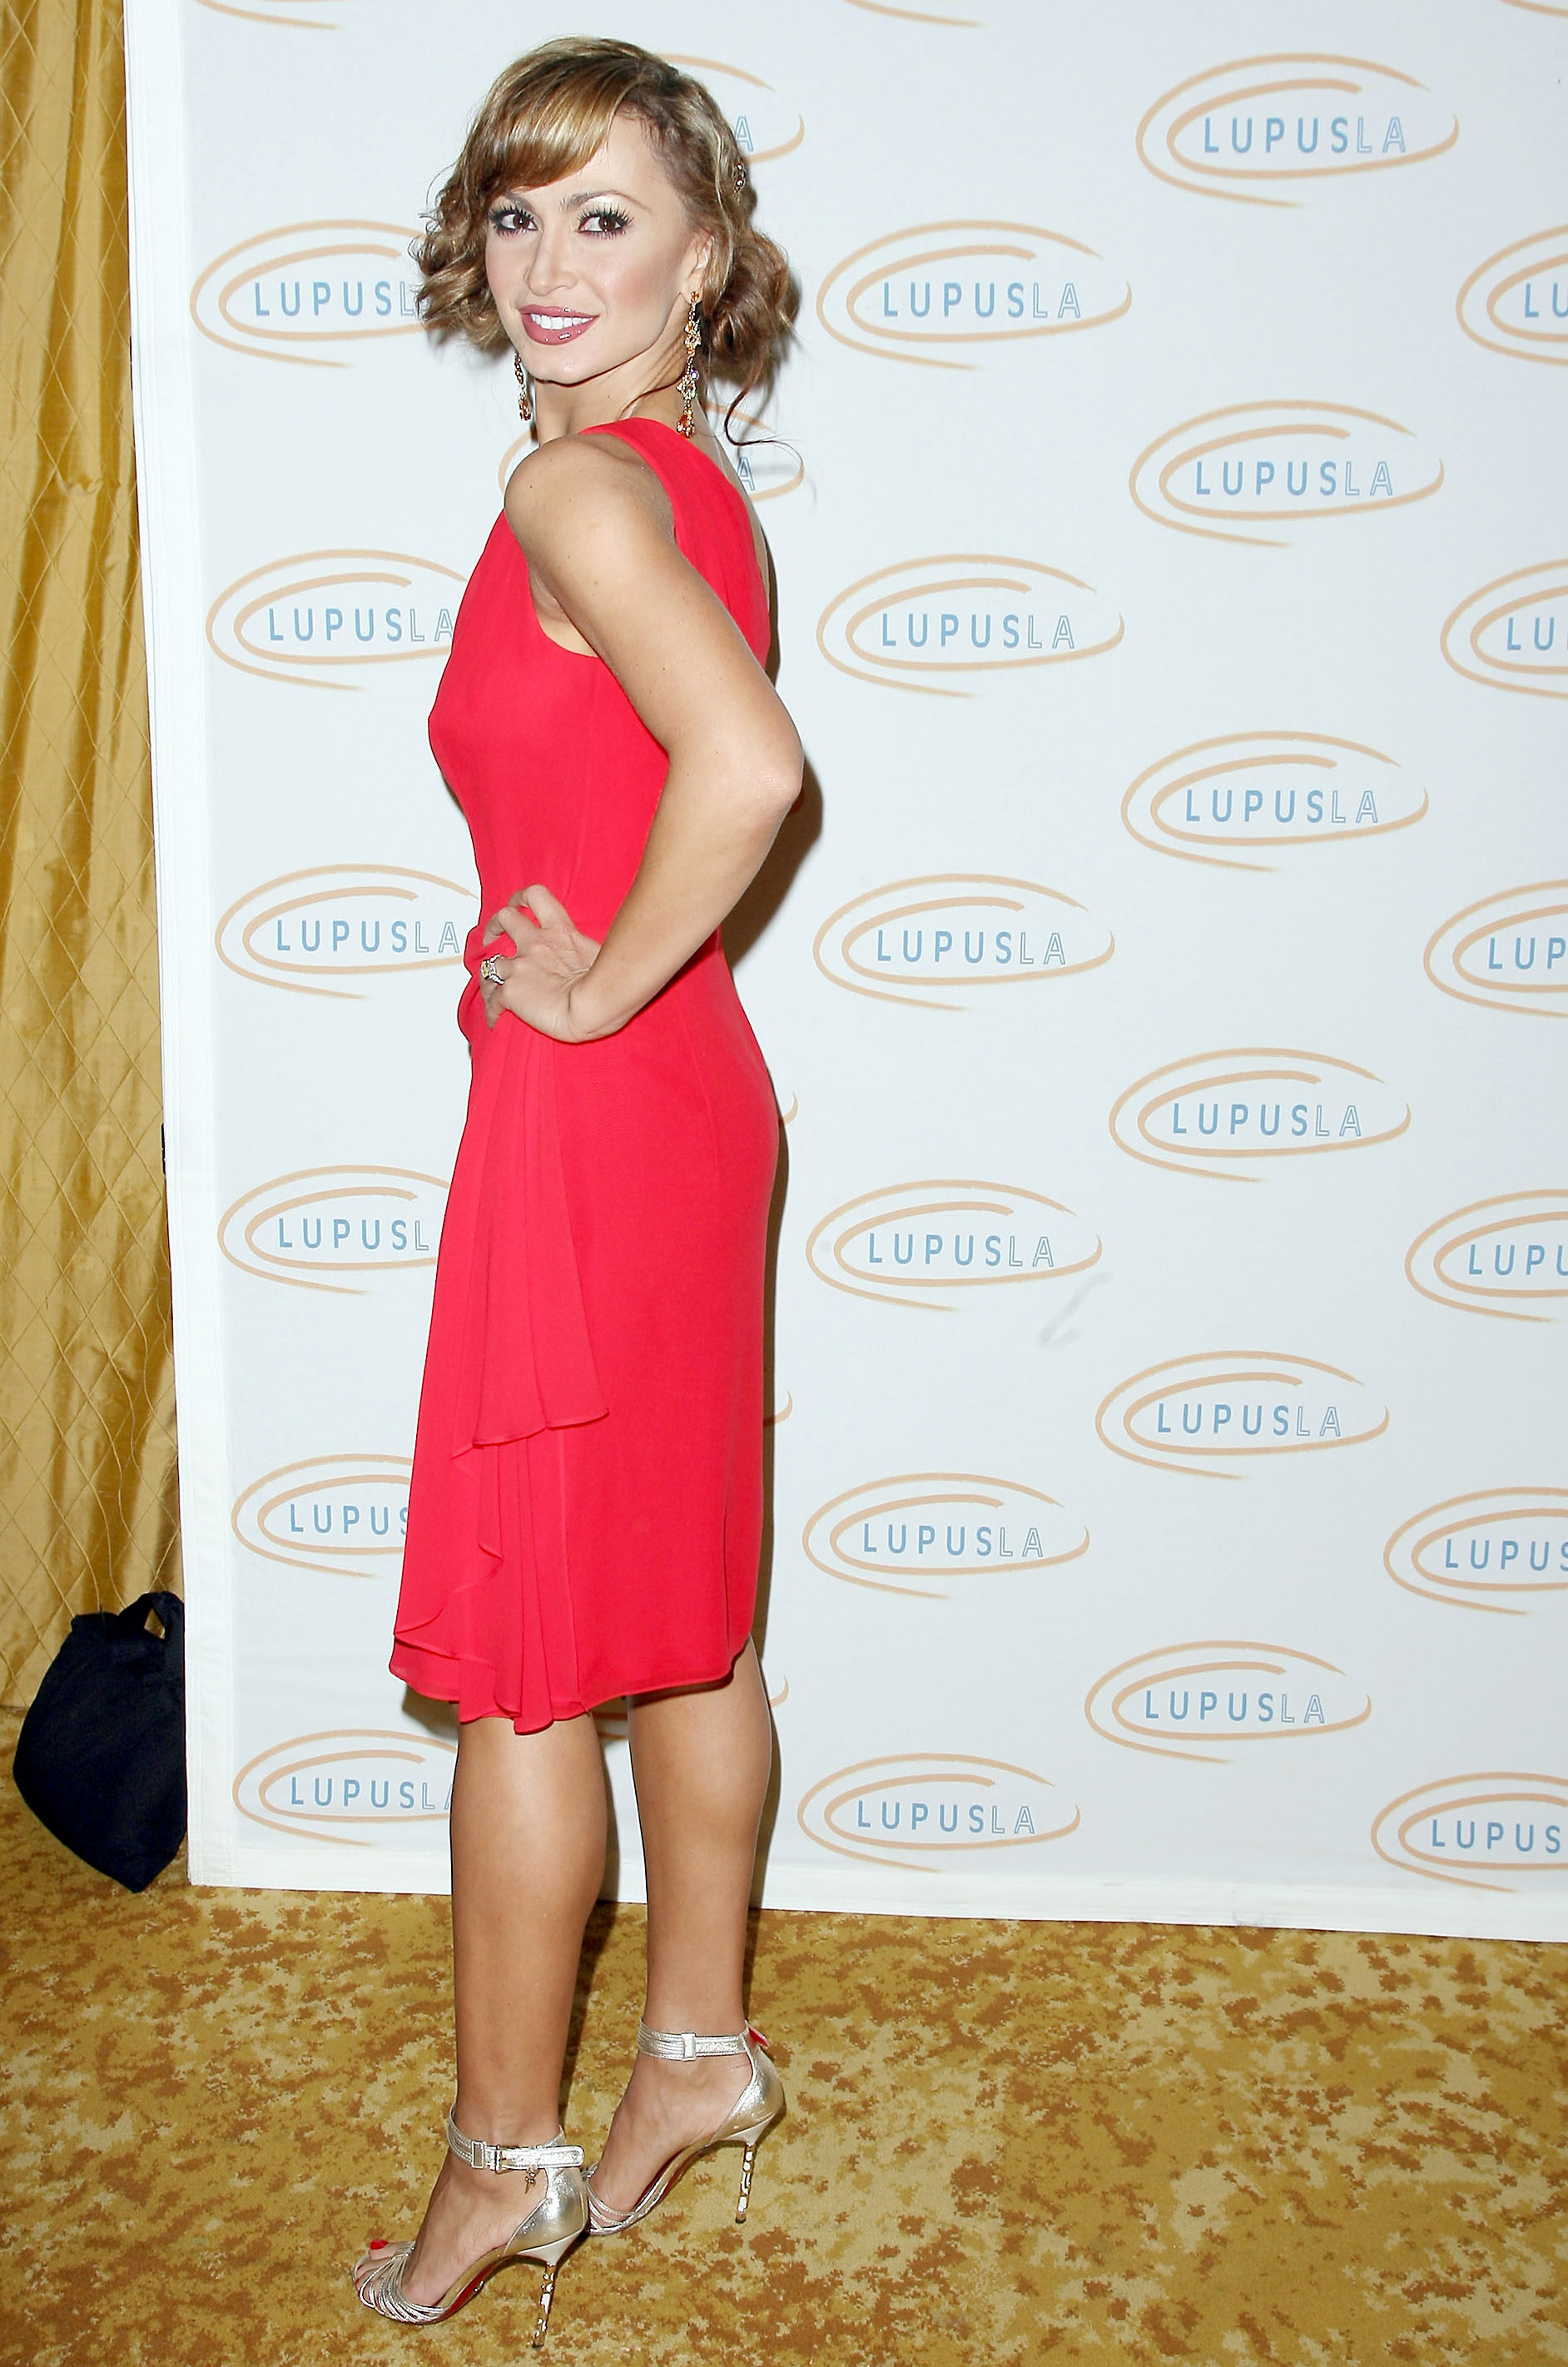 31131_Karina_Smirnoff_2008-11-07_-_Lupus_LA9s_Sixth_Annual_Hollywood_Bag_Ladies_Luncheon_in_Beverly_H_0289_122_627lo.jpg